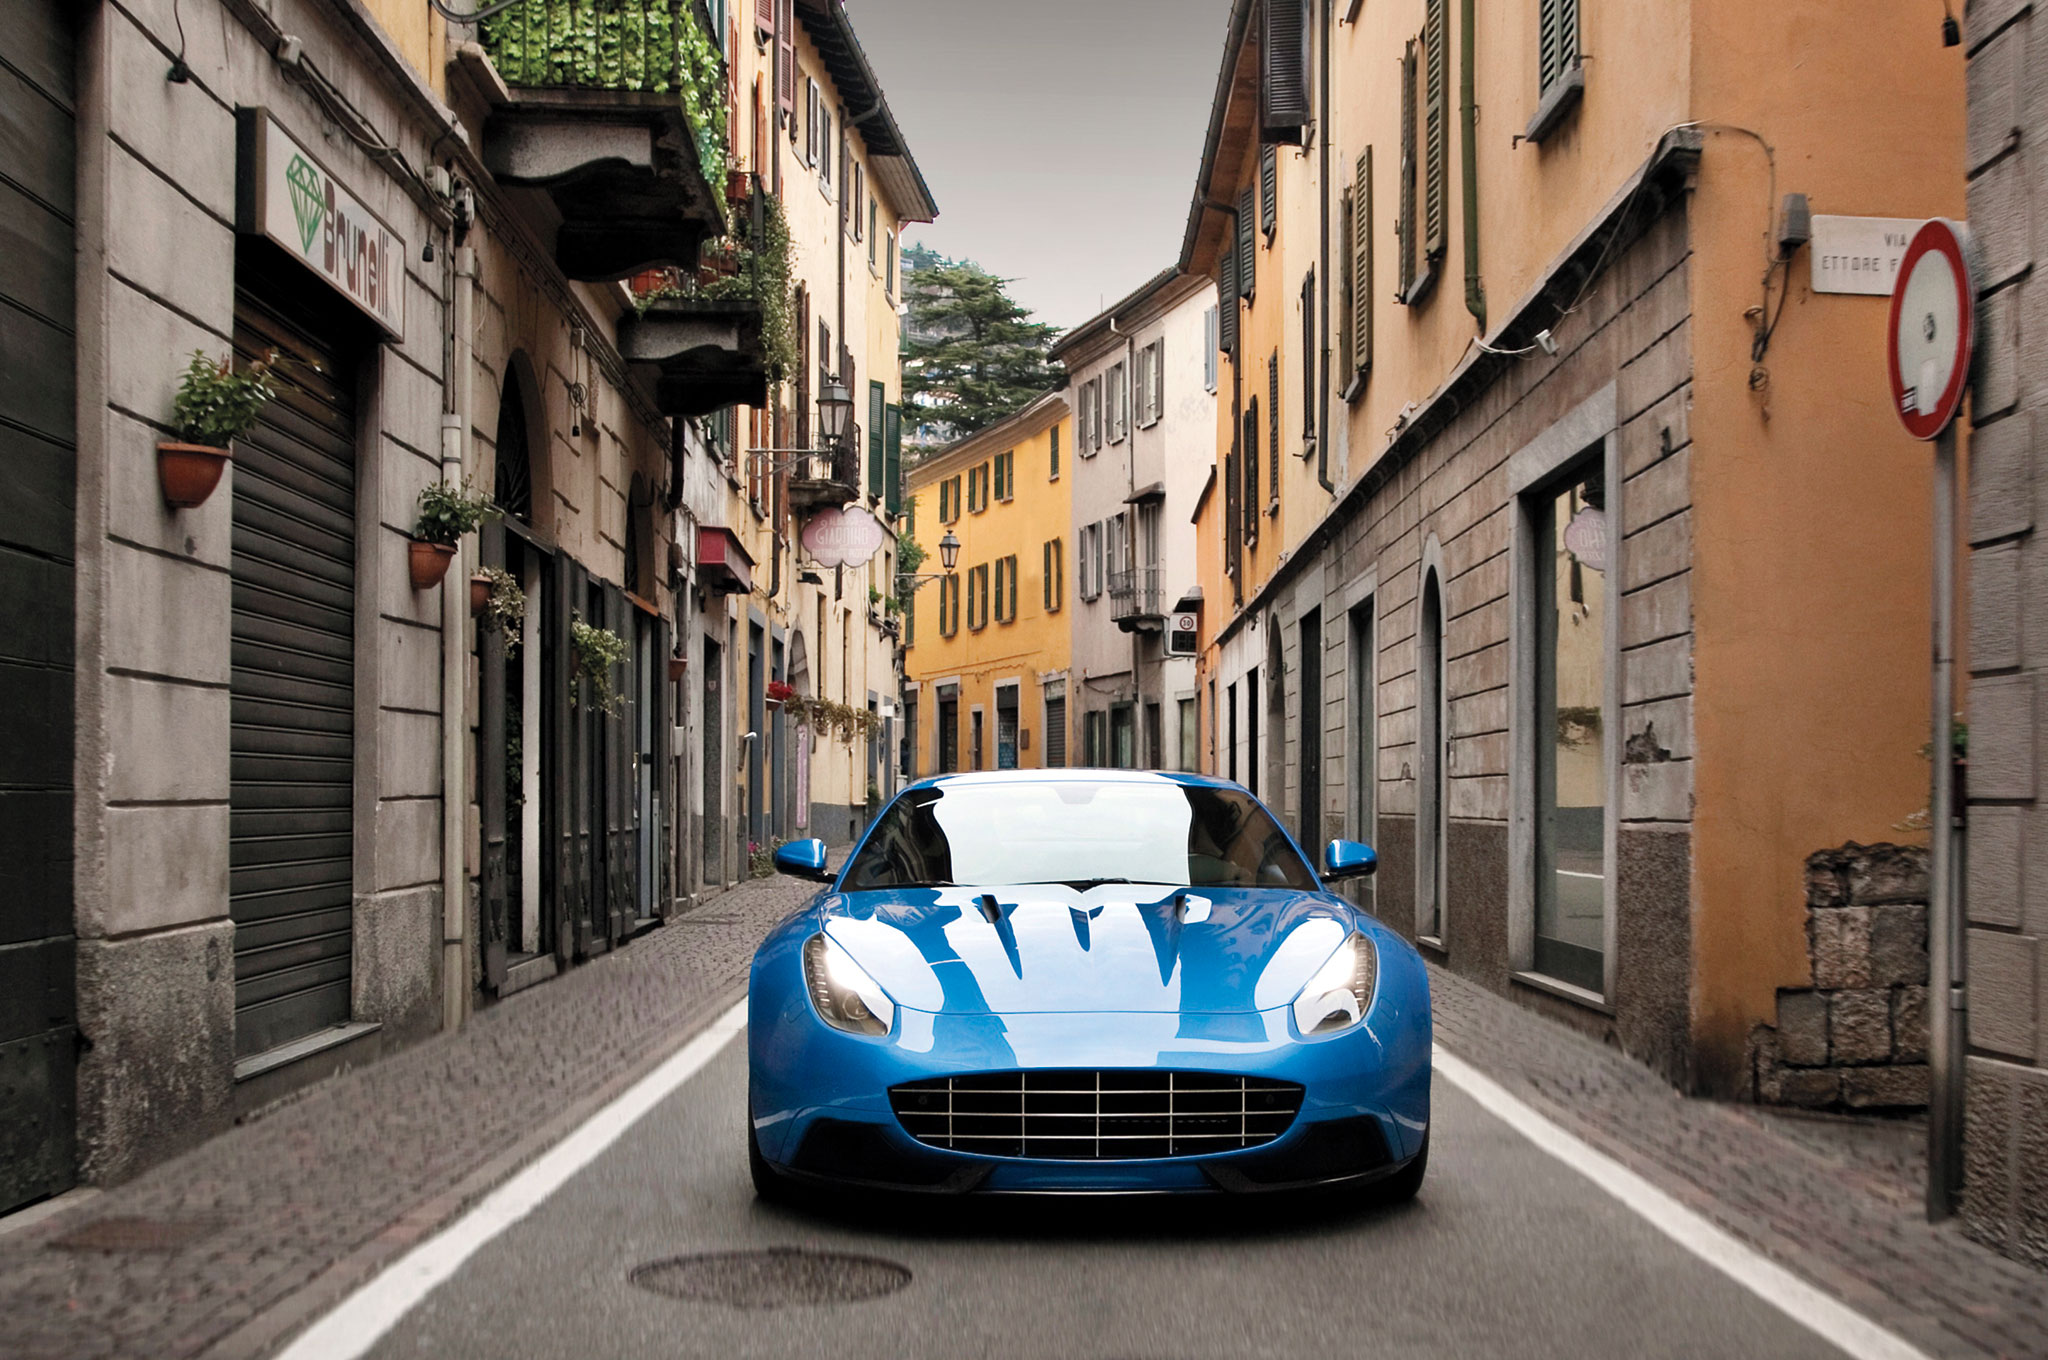 A finely tailored suit of new clothes has been draped over the chassis of a Ferrari F12, from sleek aluminum exterior panels to luxurious interior upholstery.